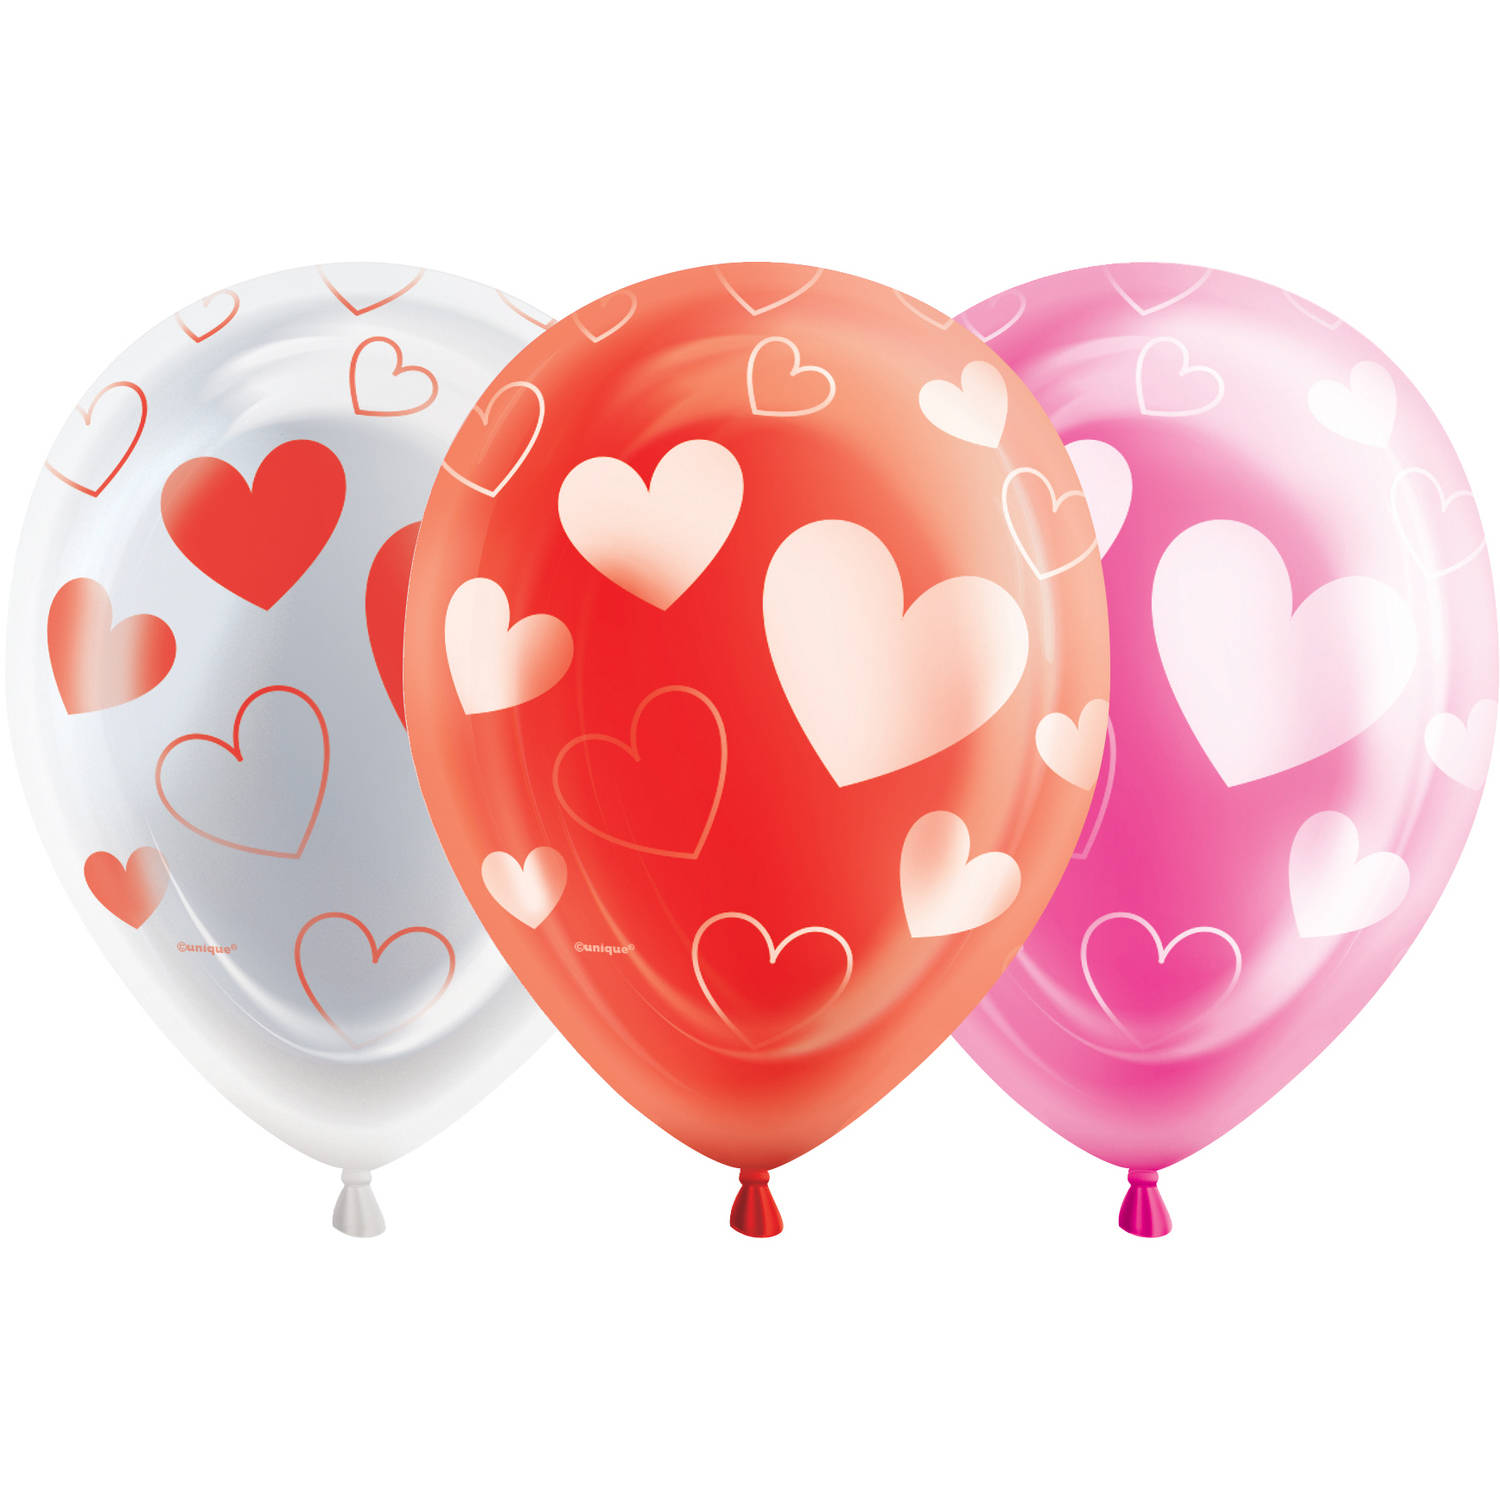 "10"" Hearts Valentine's Day LED Light Up Balloons, 5ct"